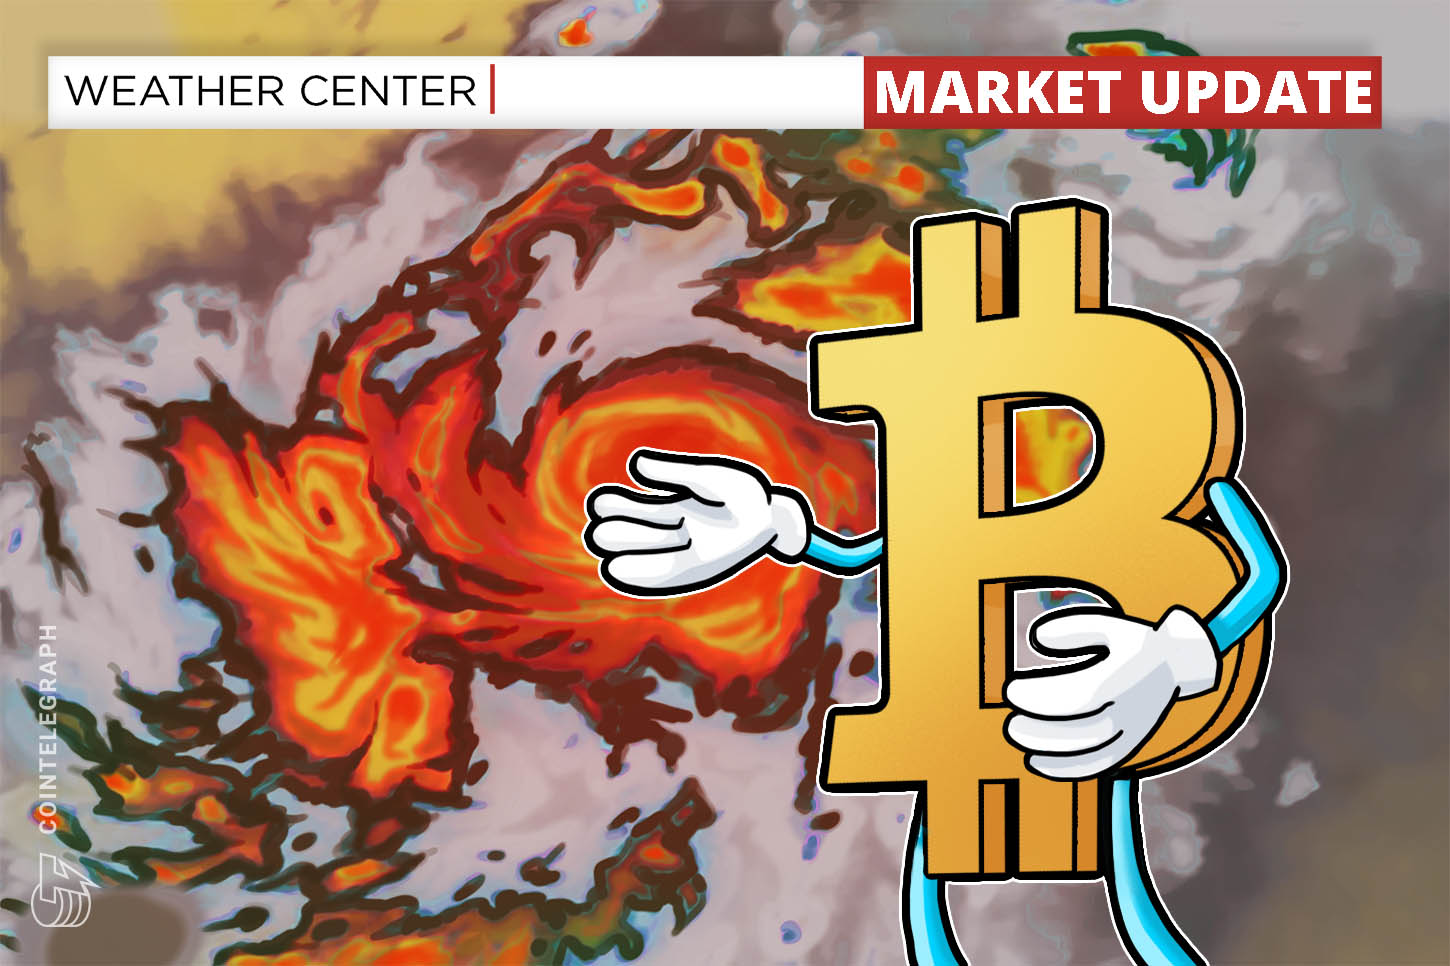 Bitcoin dips below $33K as shorts spike, trader warns of 'violent' BTC price squeeze